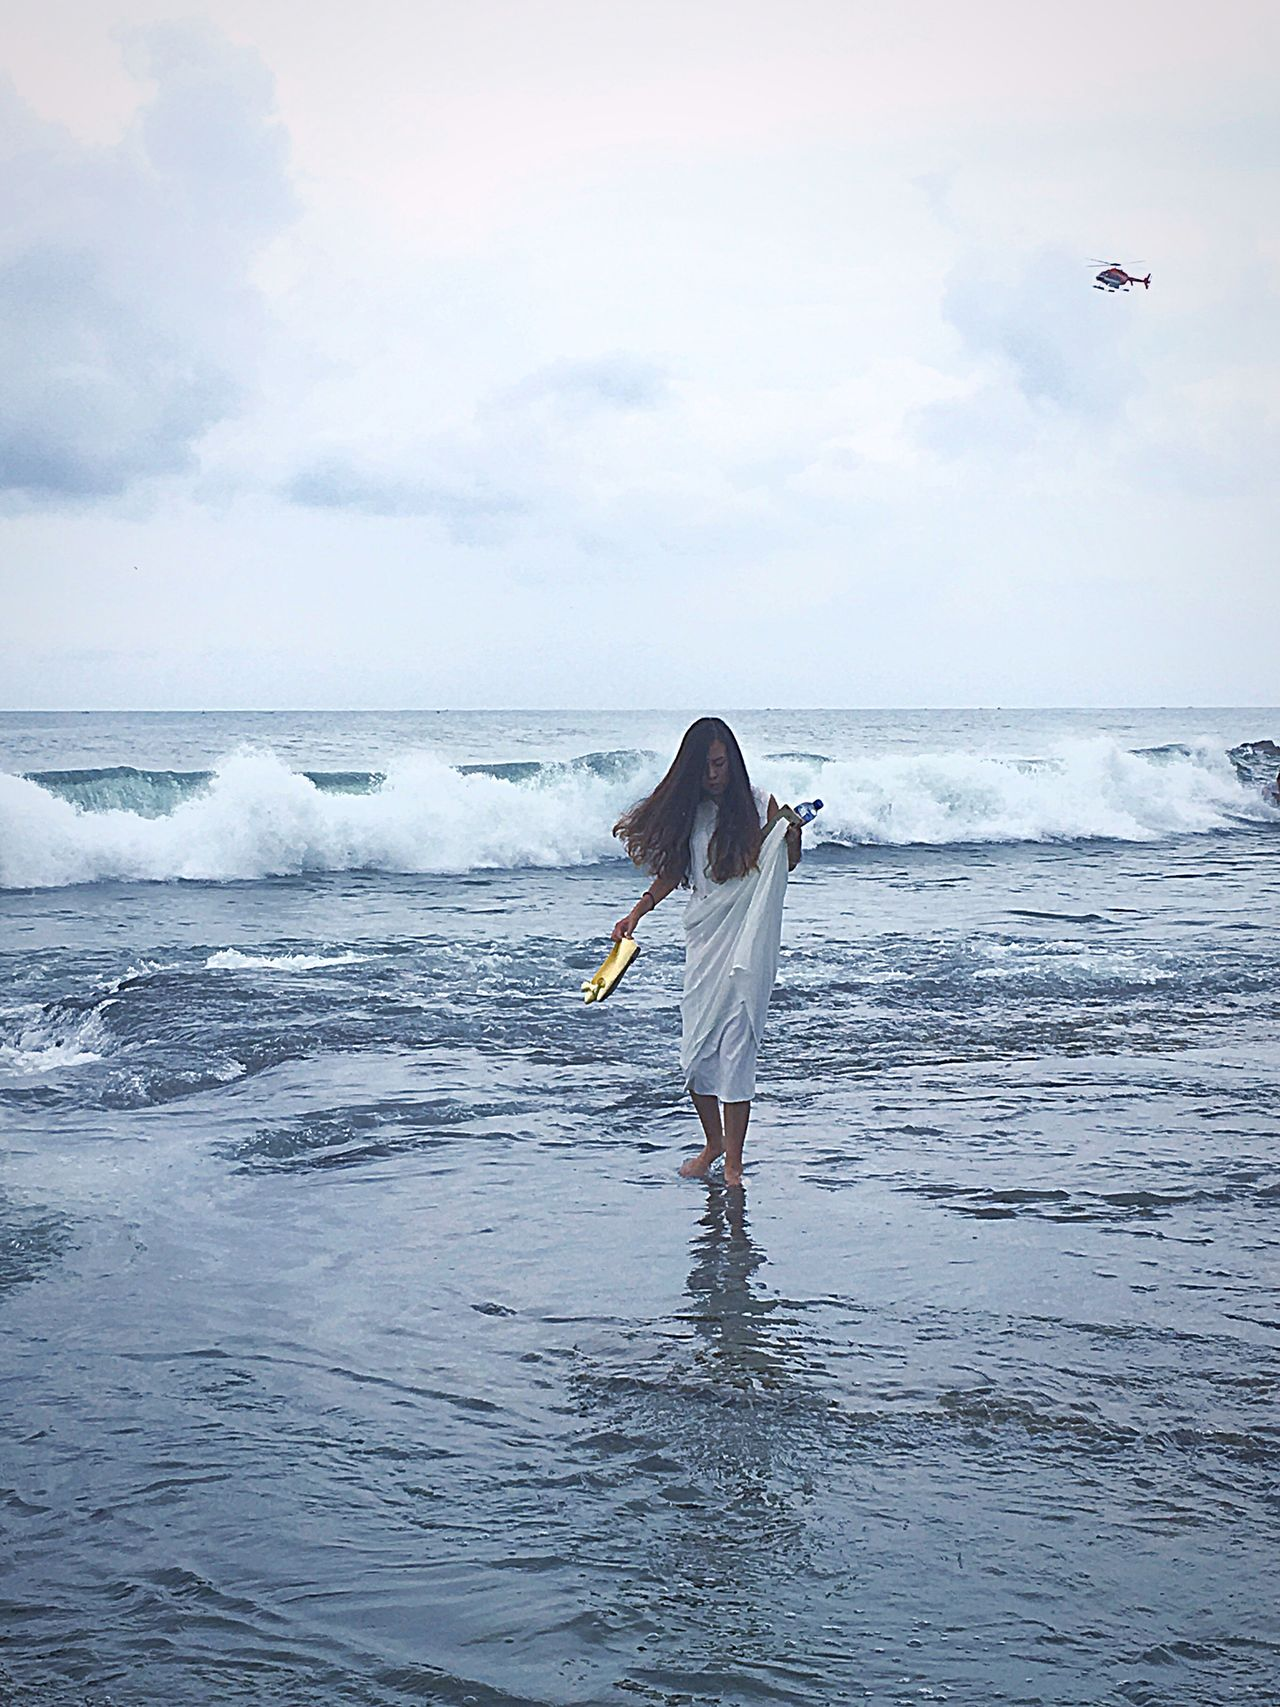 Solace Sea Horizon Over Water Wave Beach Water Surf Bird Scenics Tranquil Scene Animals In The Wild Sky Surfing Tranquility Surfboard Shore Beauty In Nature Nature Flying Full Length Solitude Tanah Lot Bali, Indonesia Tanah Lot